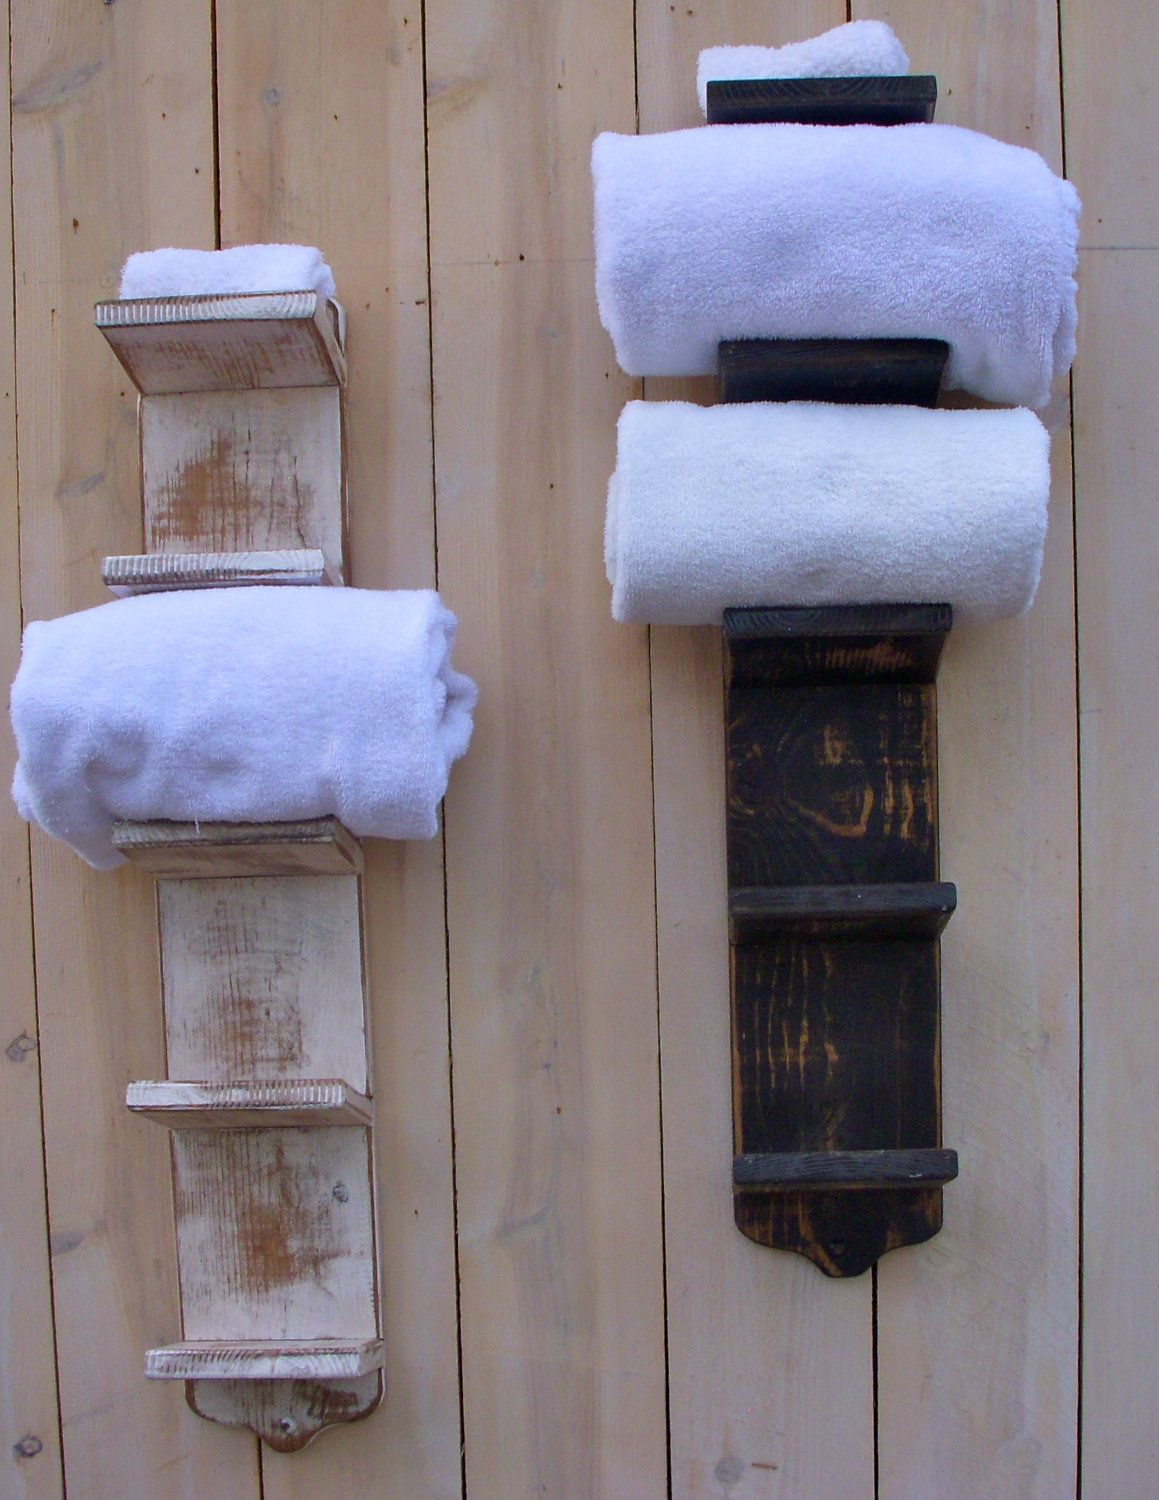 Bathroom Towel Storage Holder Winter Project For Kett Bathroom - Bathroom hand towel basket for small bathroom ideas